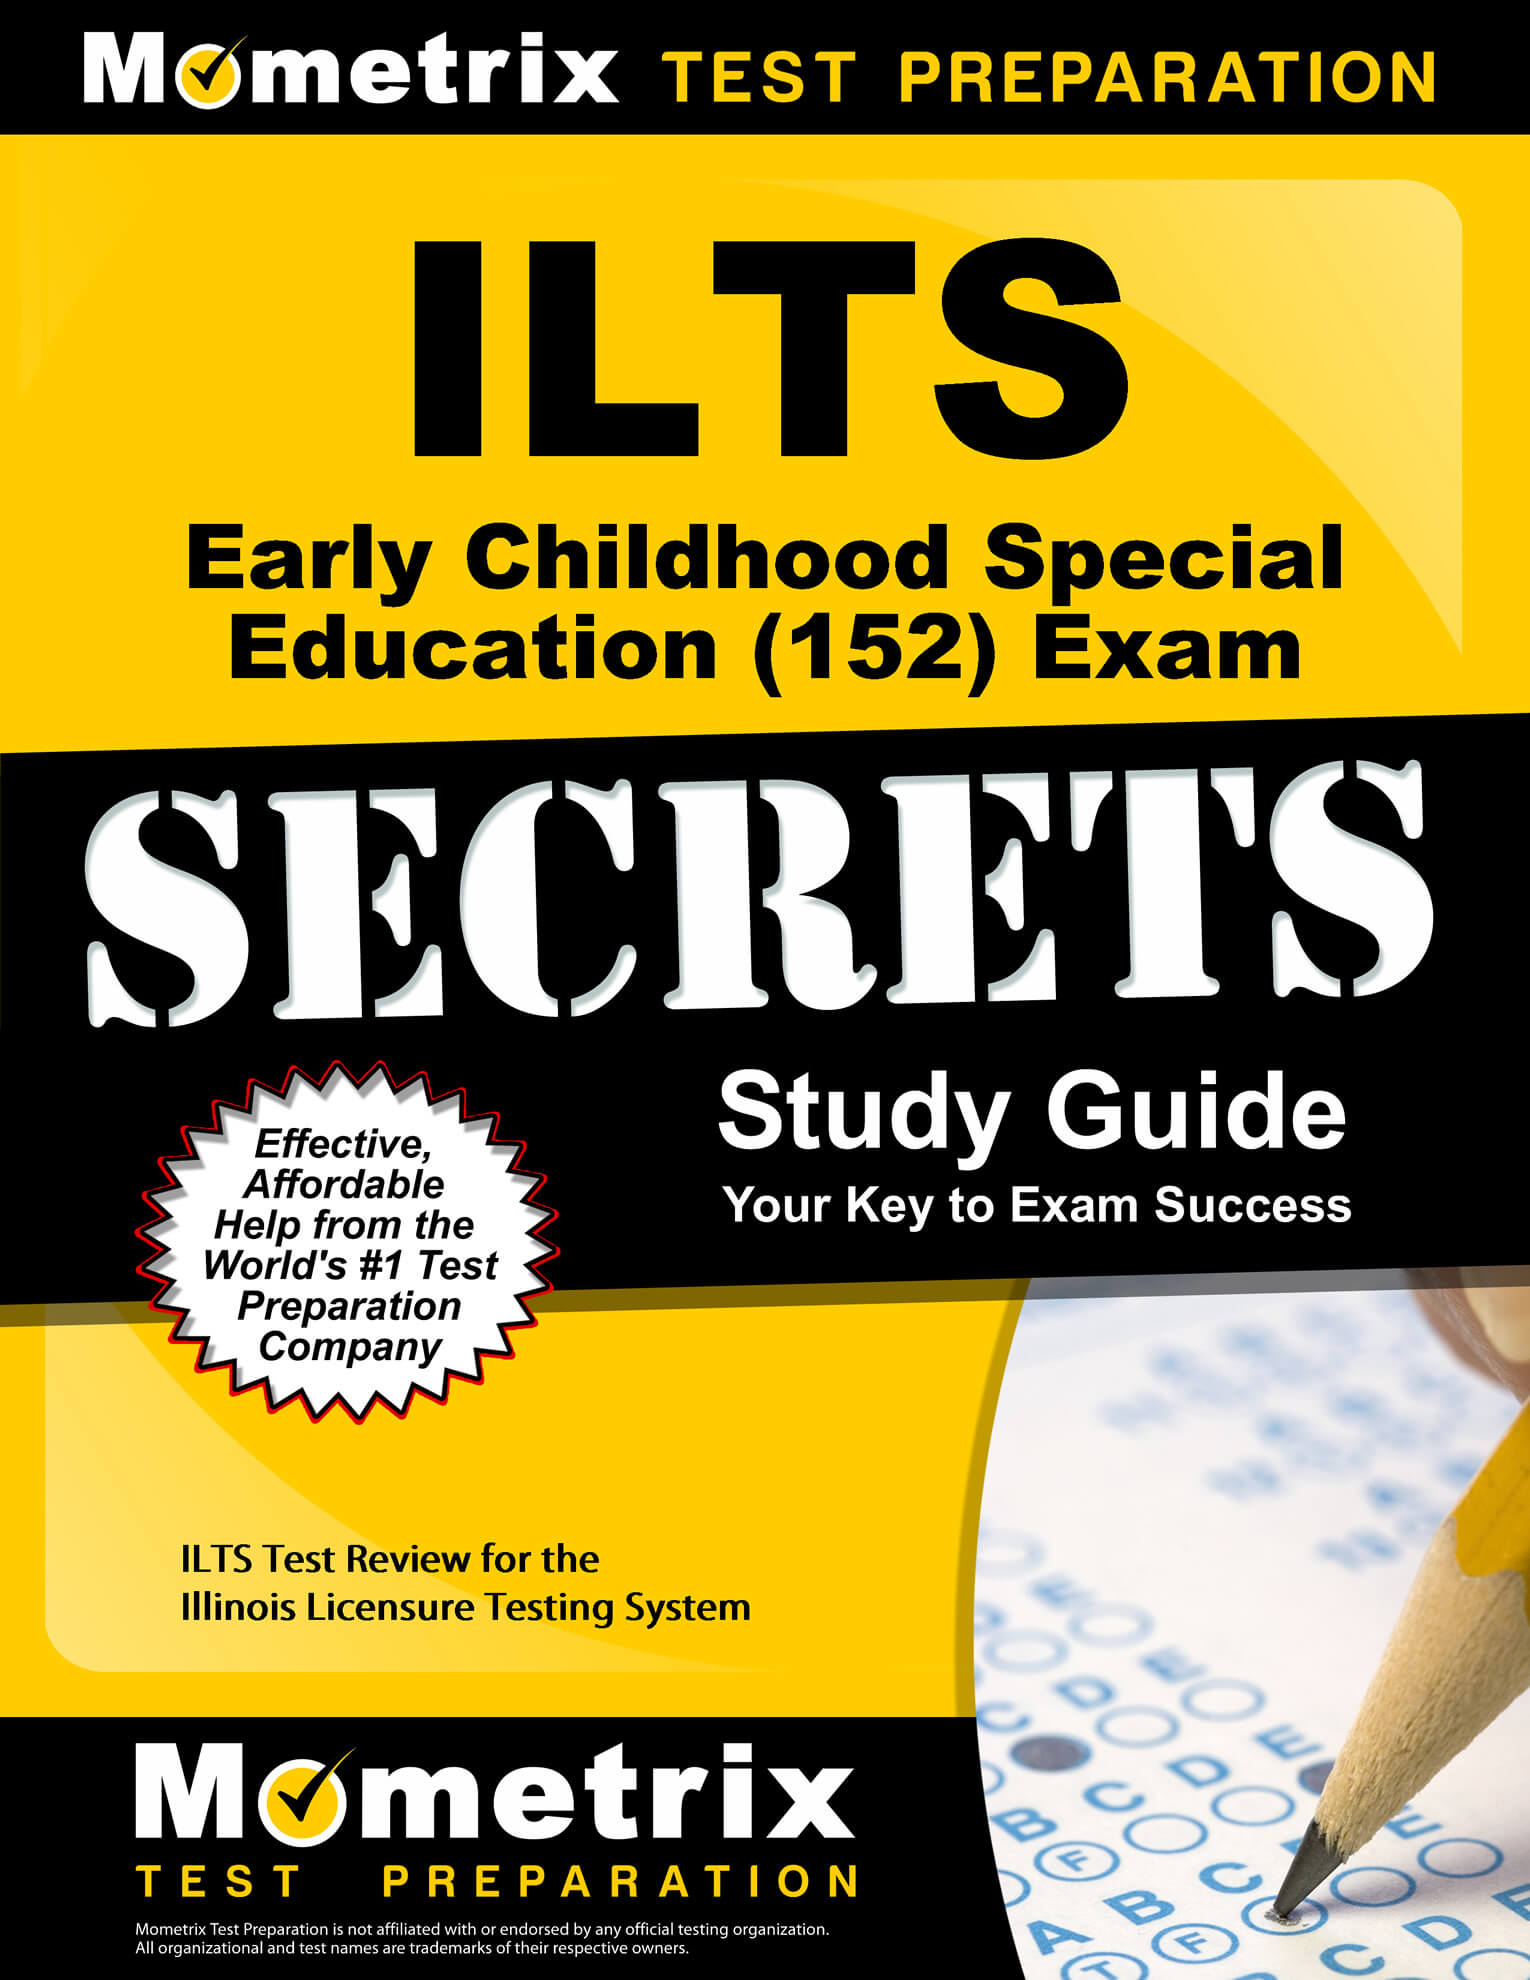 ILTS Early Childhood Special Education Study Guide